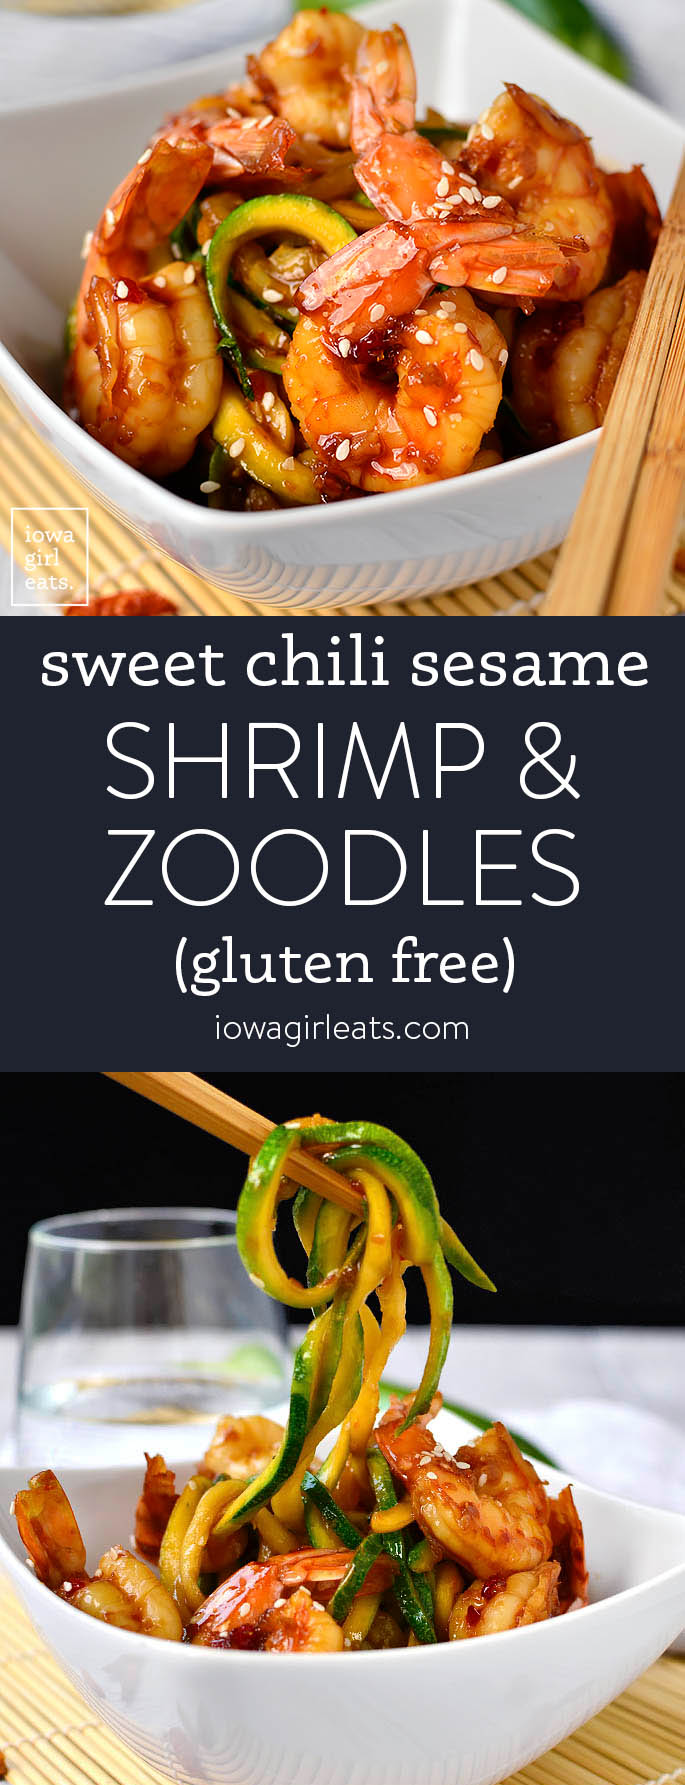 Photo collage of sweet chili shrimp and zoodles